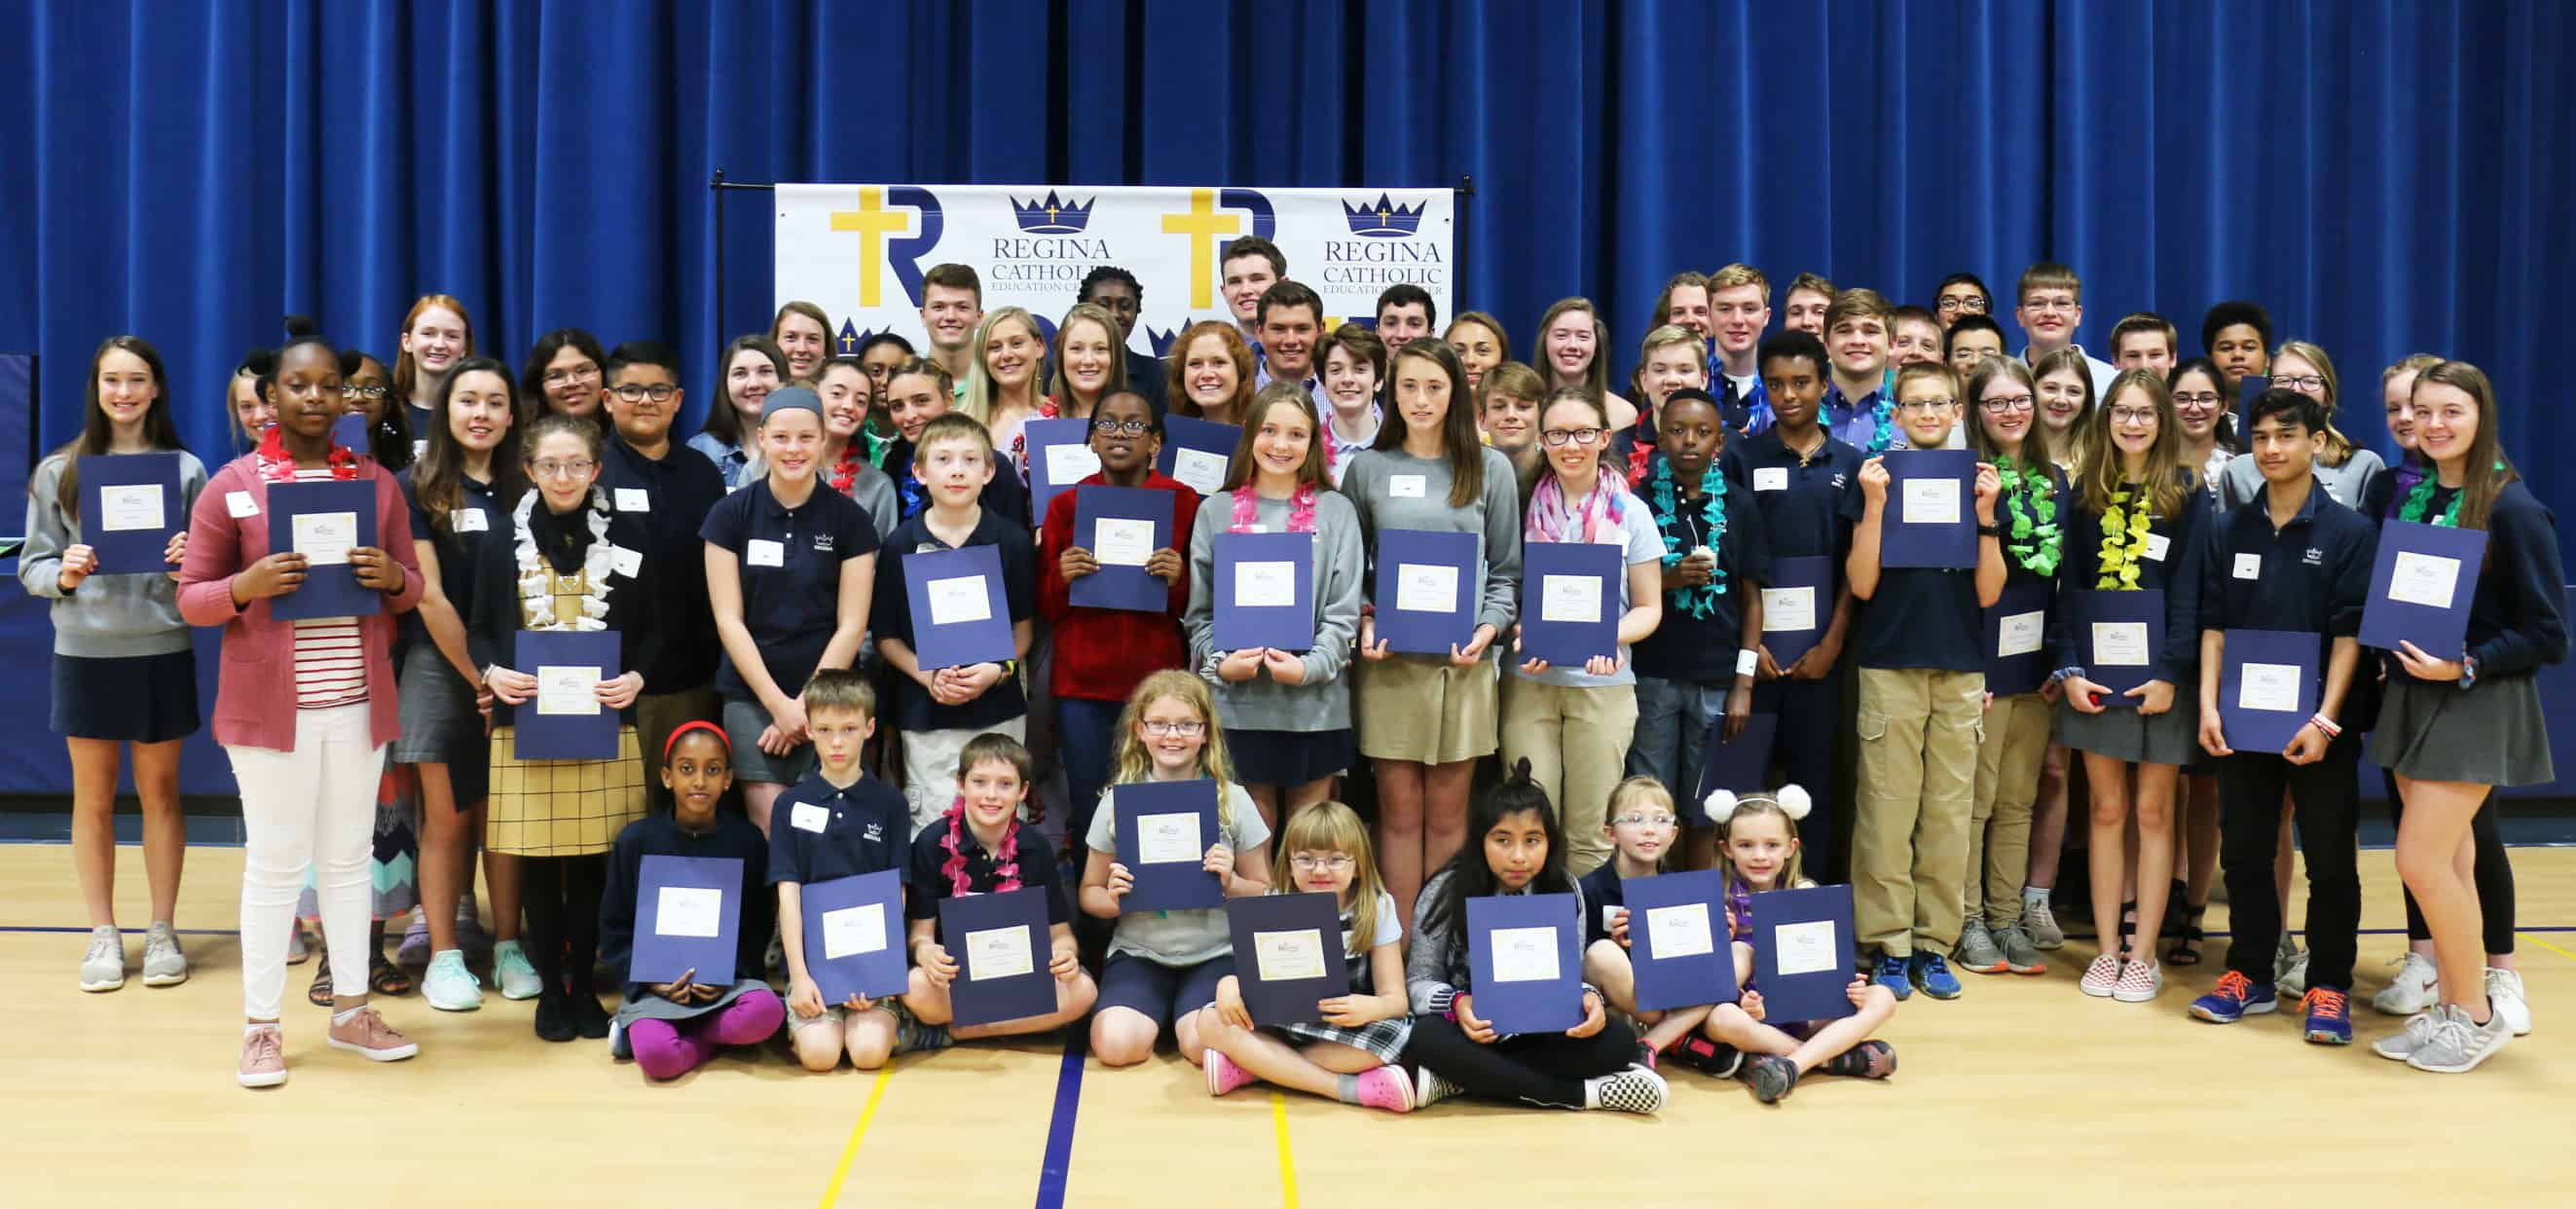 2019 Scholarship Recipient Group Photo